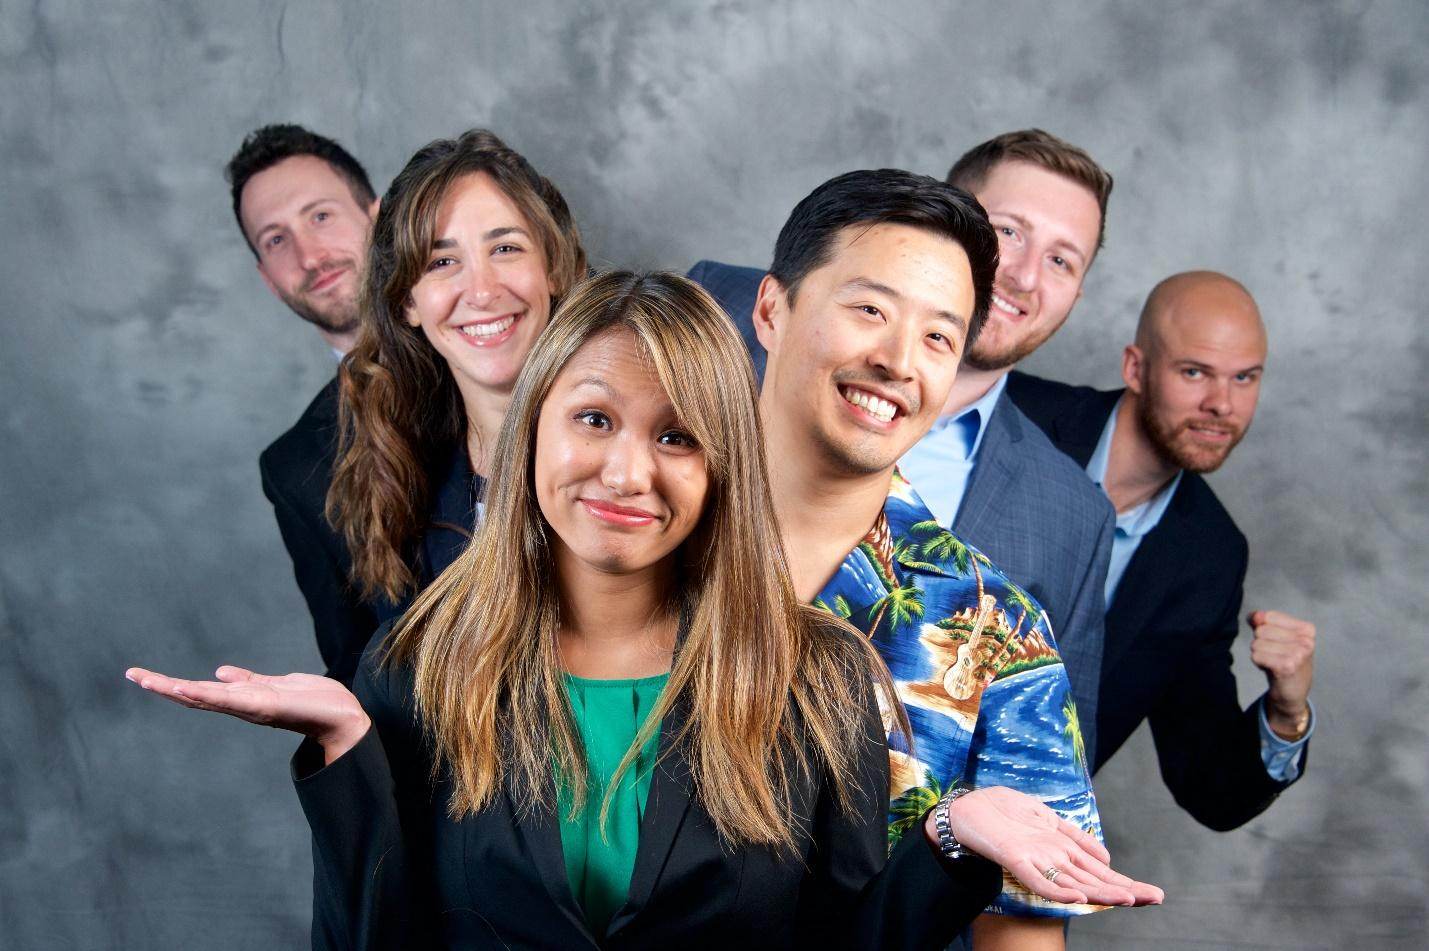 A group of people posing for the camera  Description automatically generated